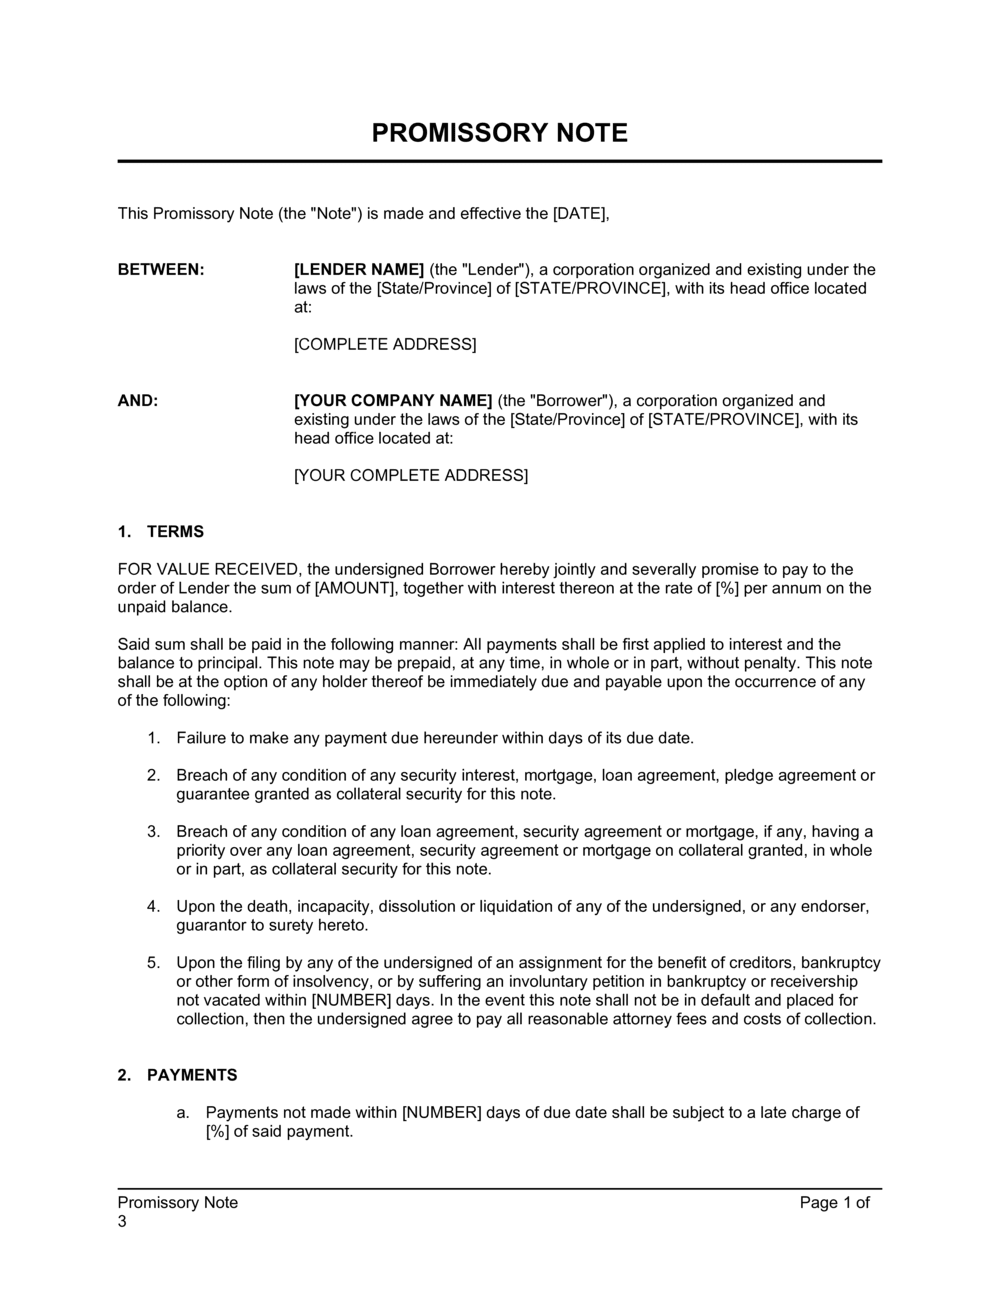 Business-in-a-Box's Promissory Note With Acknowledgment Template